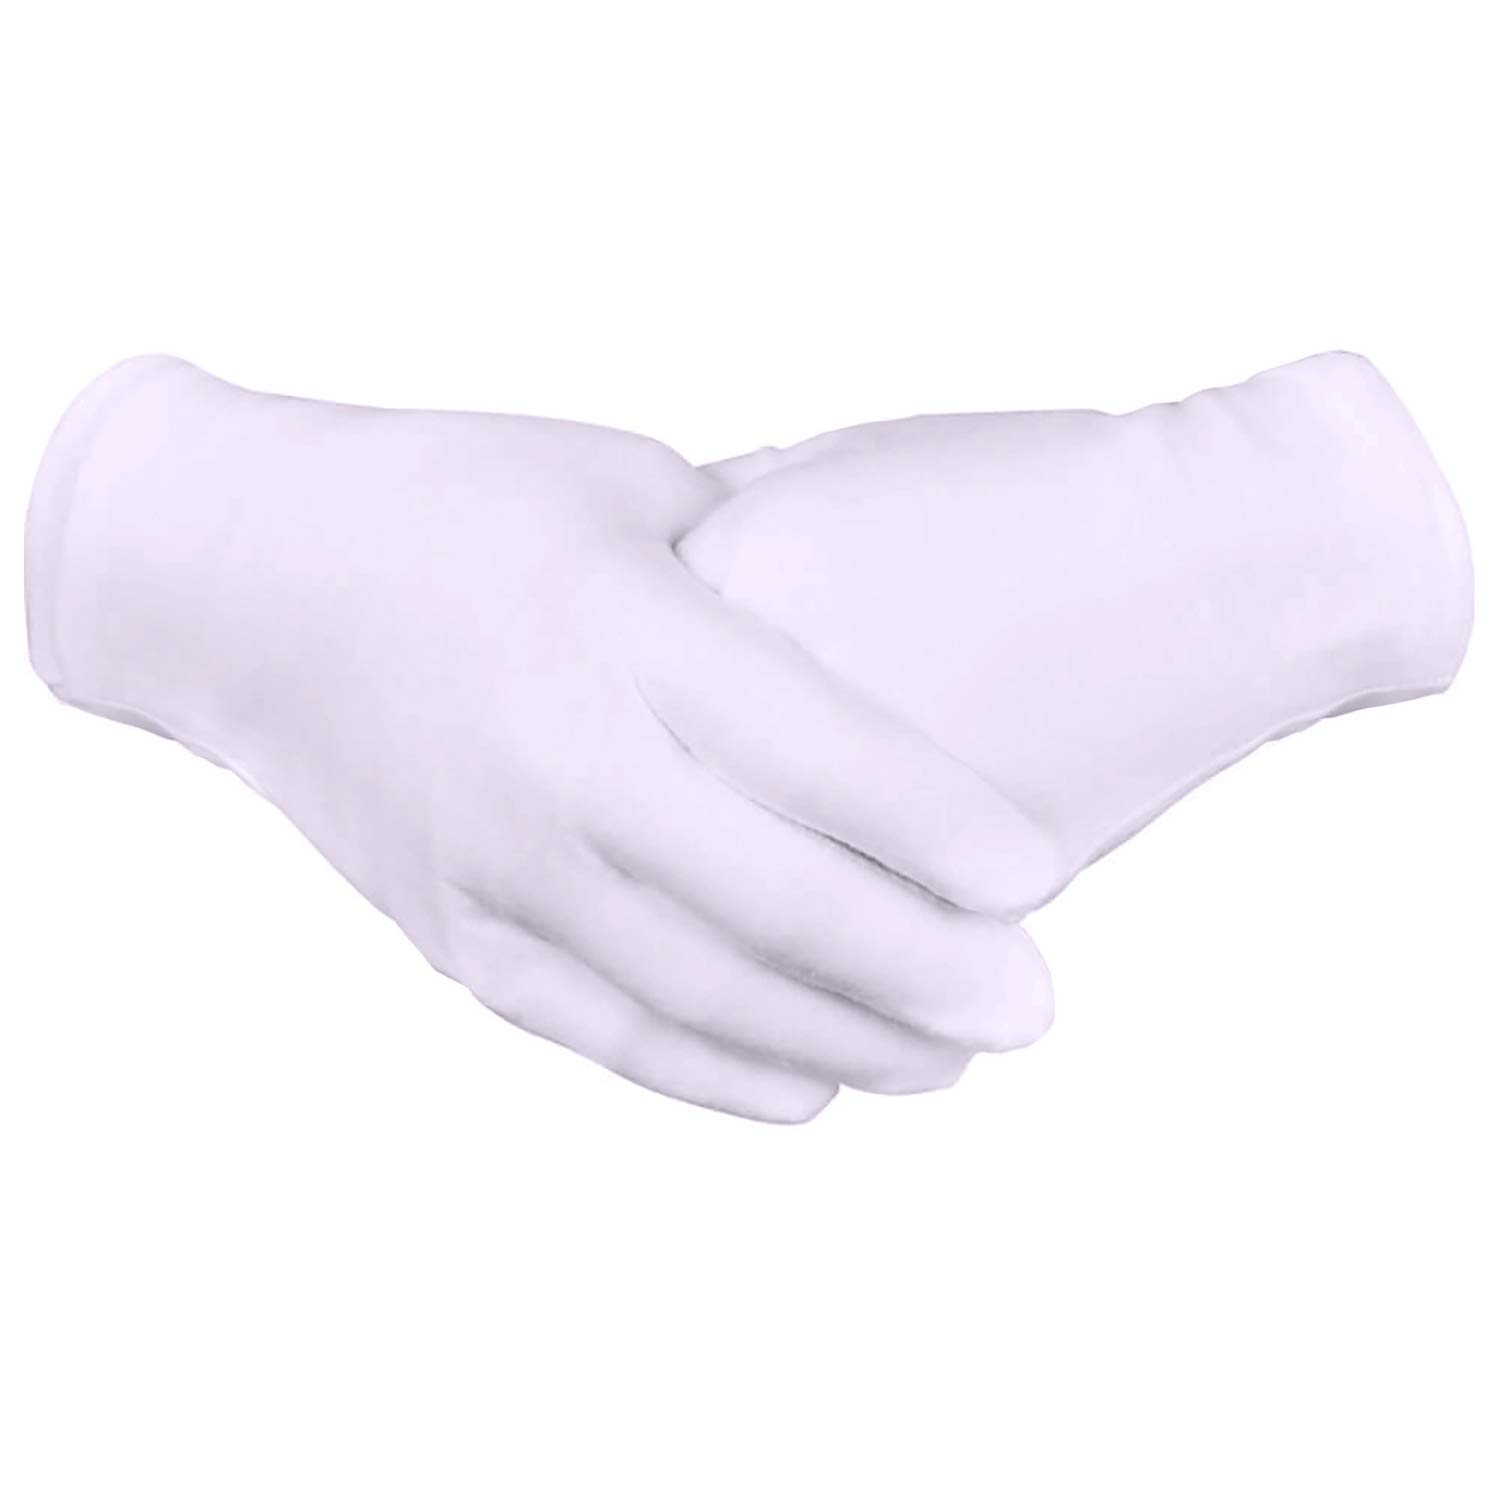 Zealor 12 Pairs Cotton Gloves Thickened Stretchable Lining Glove, Coin Jewelry Silver Inspection Gloves, Medium Size